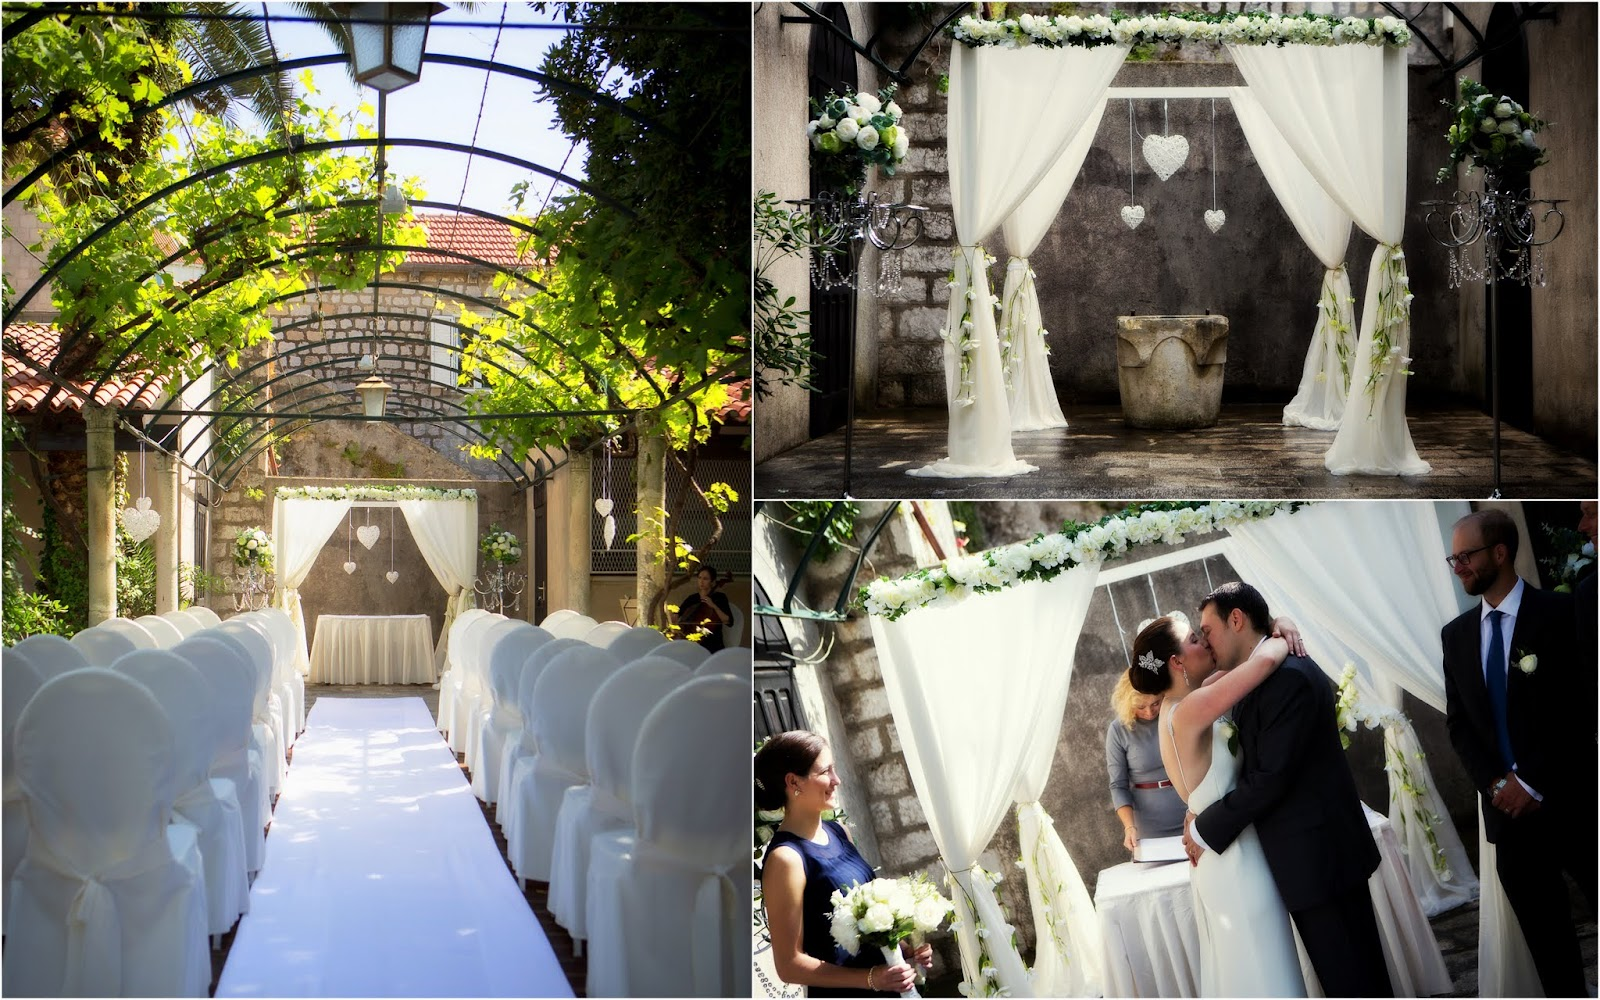 Dubrovnik outdoors garden wedding